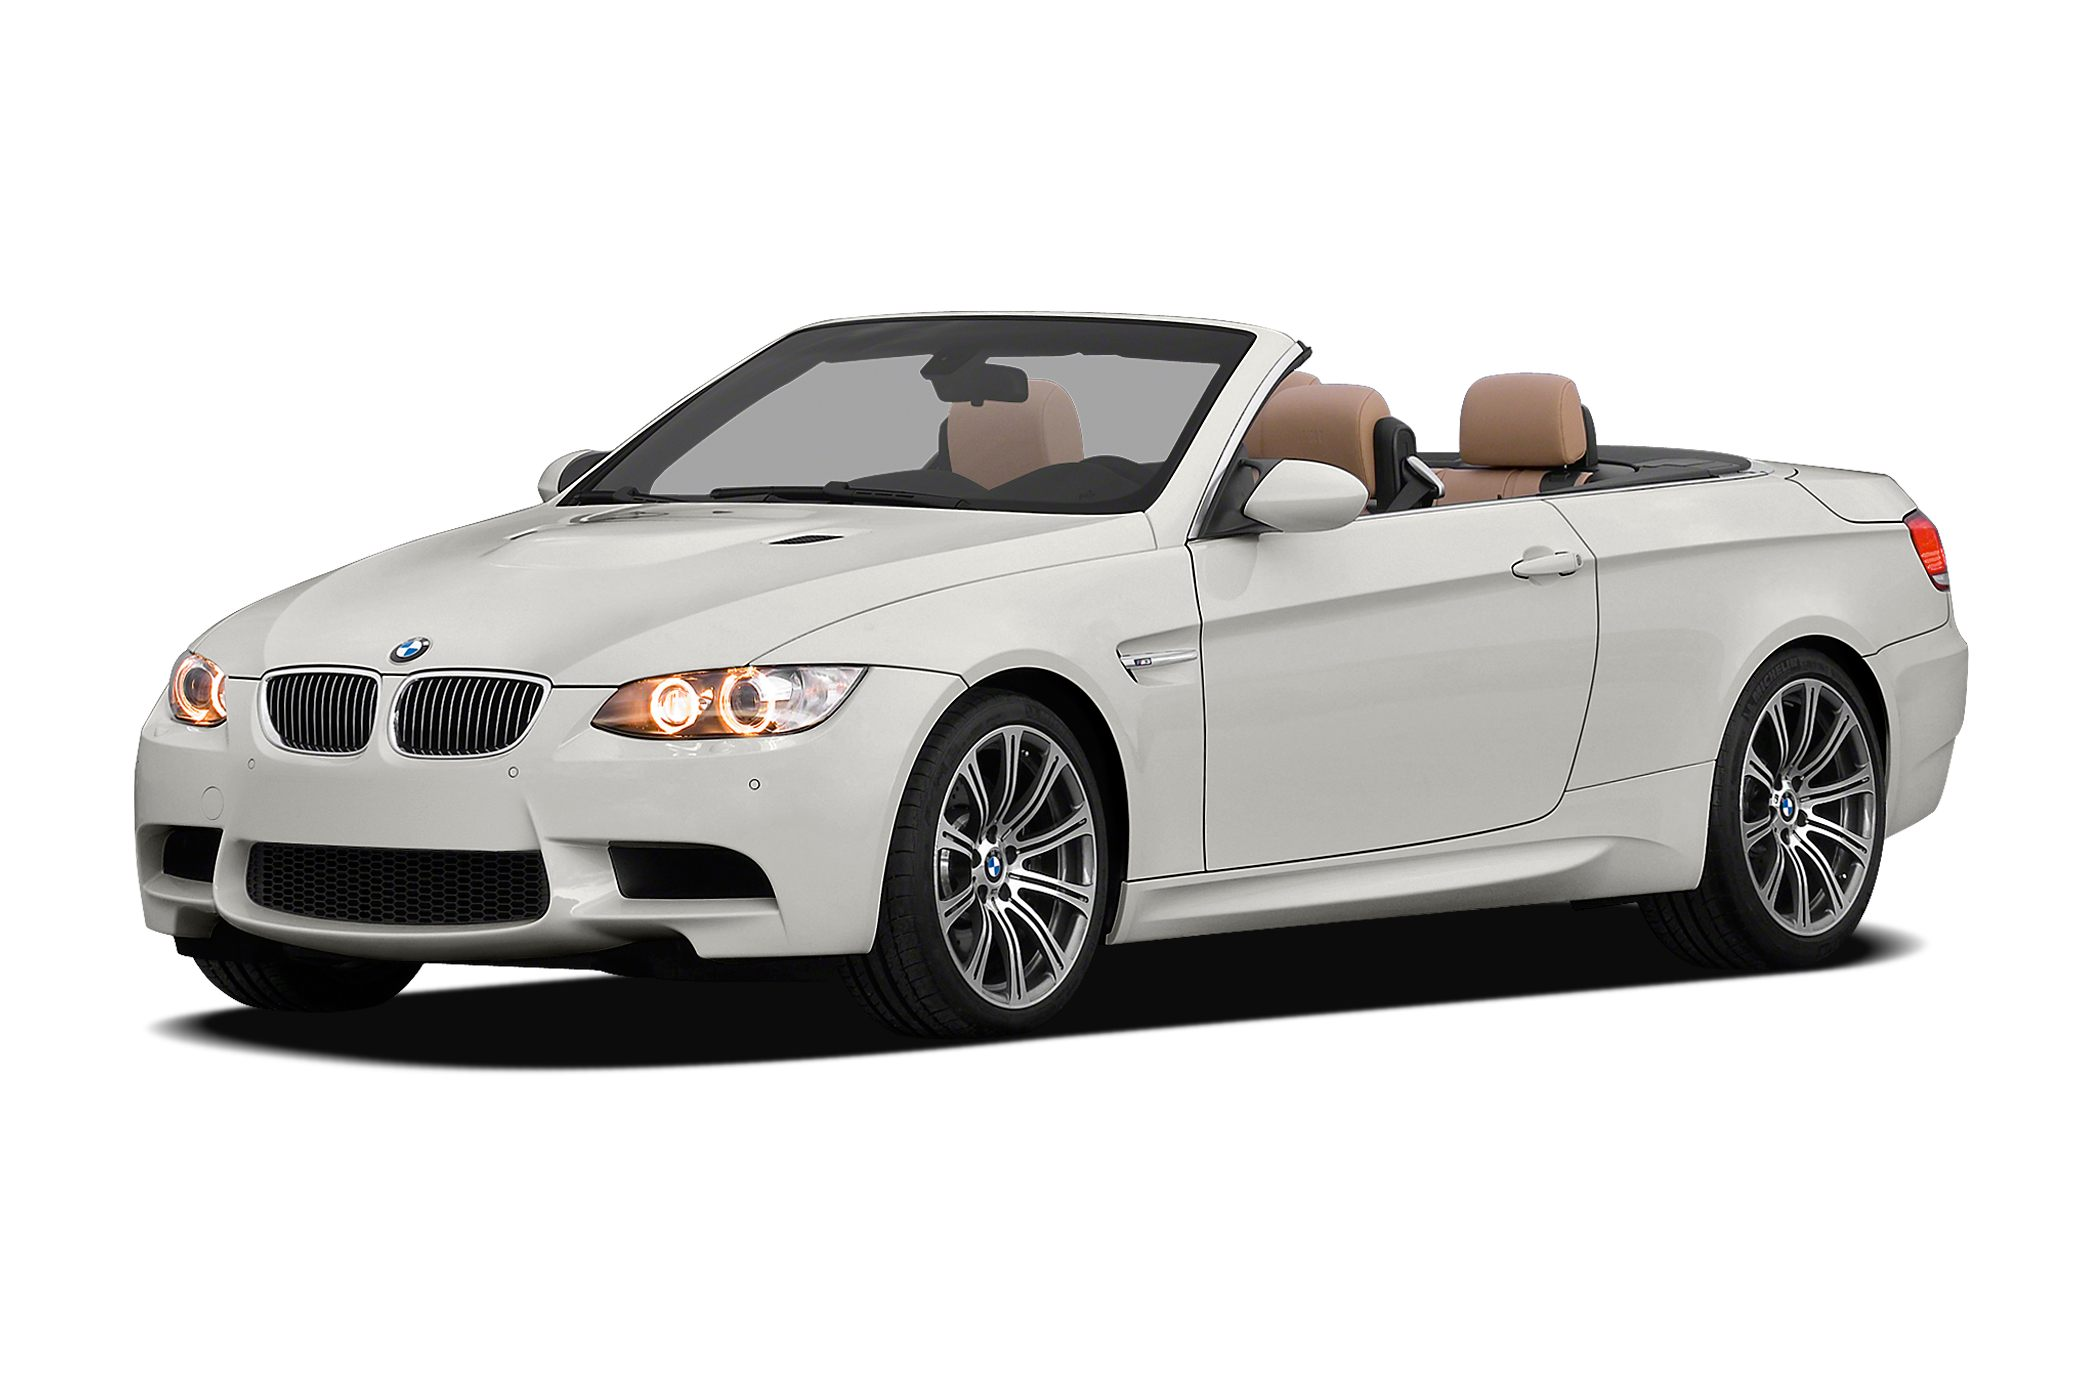 2012 BMW M3 Base WE SELL OUR VEHICLES AT WHOLESALE PRICES AND STAND BEHIND OUR CARS  COME SEE